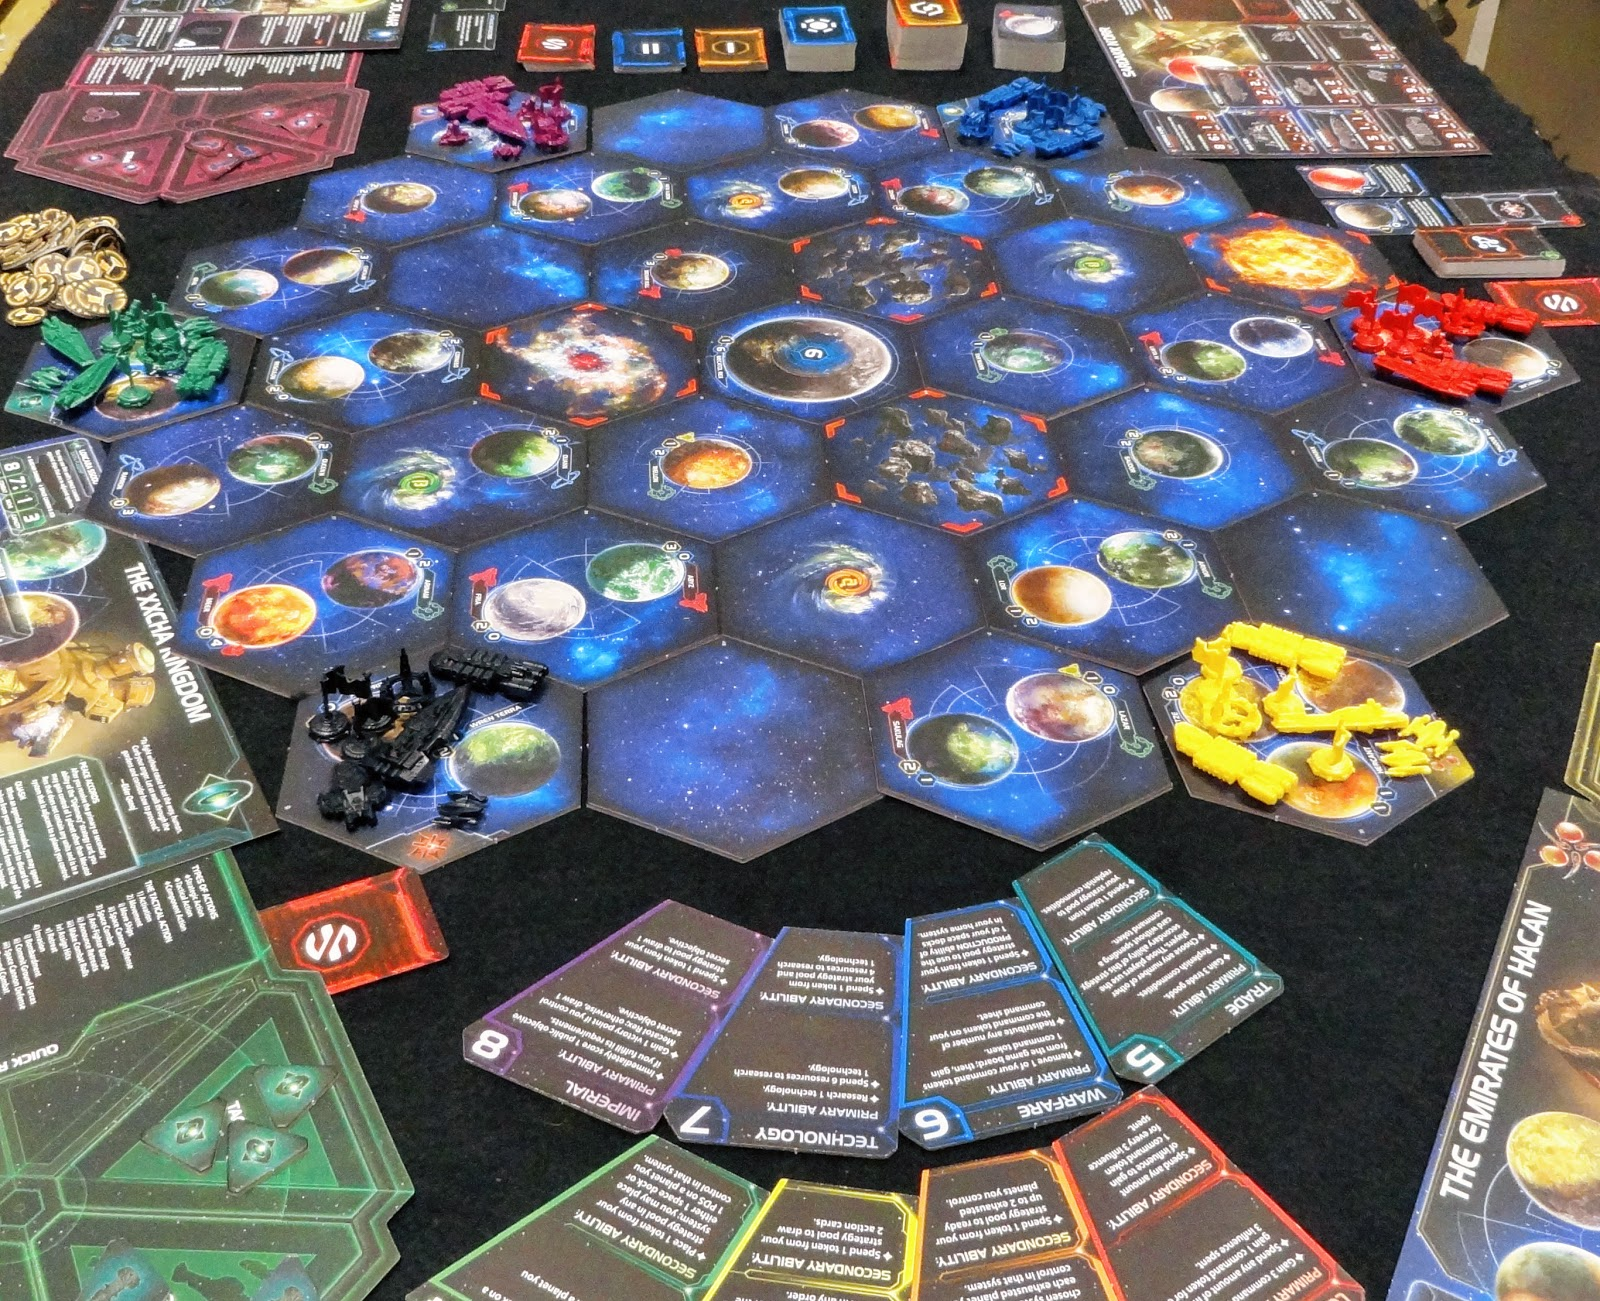 Twilight Imperium 4th Edition - A Wargamers Needful Things